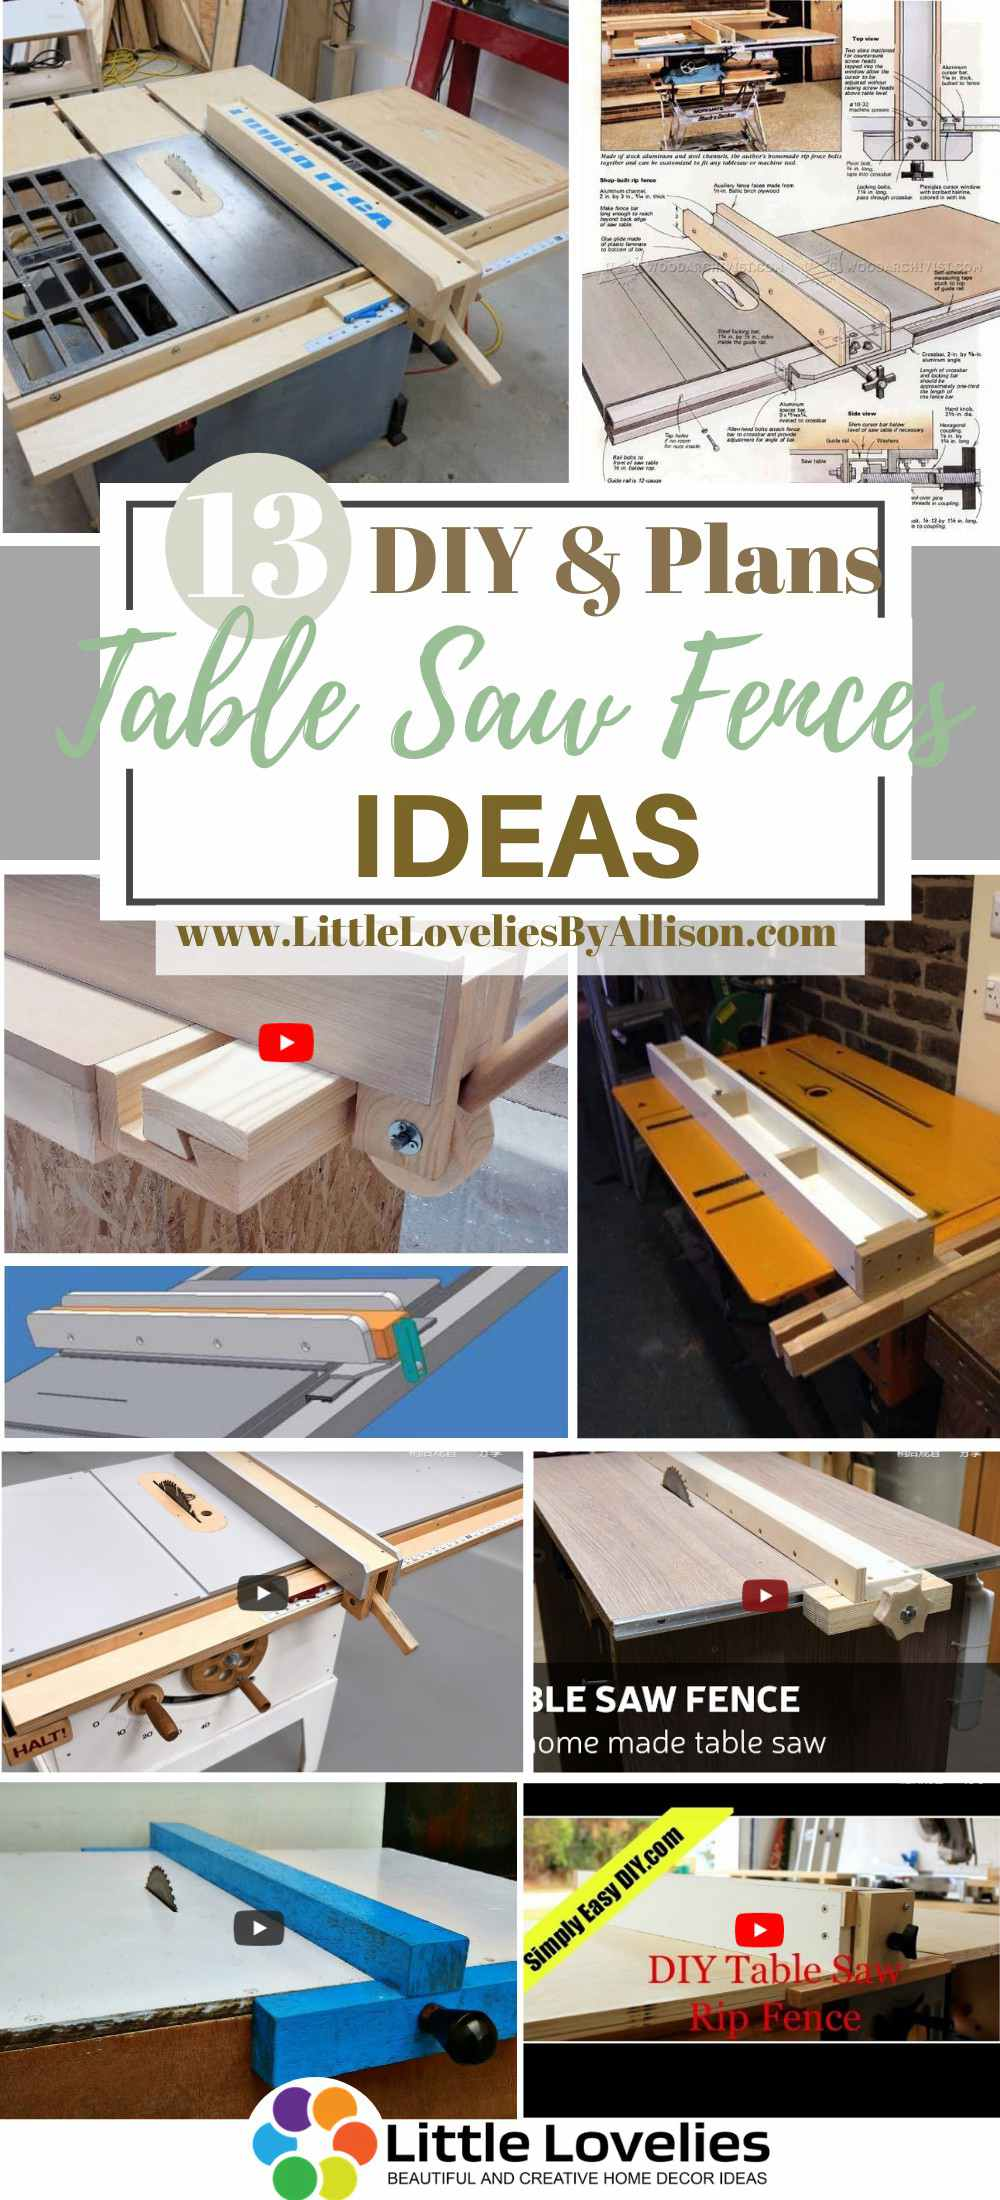 DIY TabACle Saw Fences